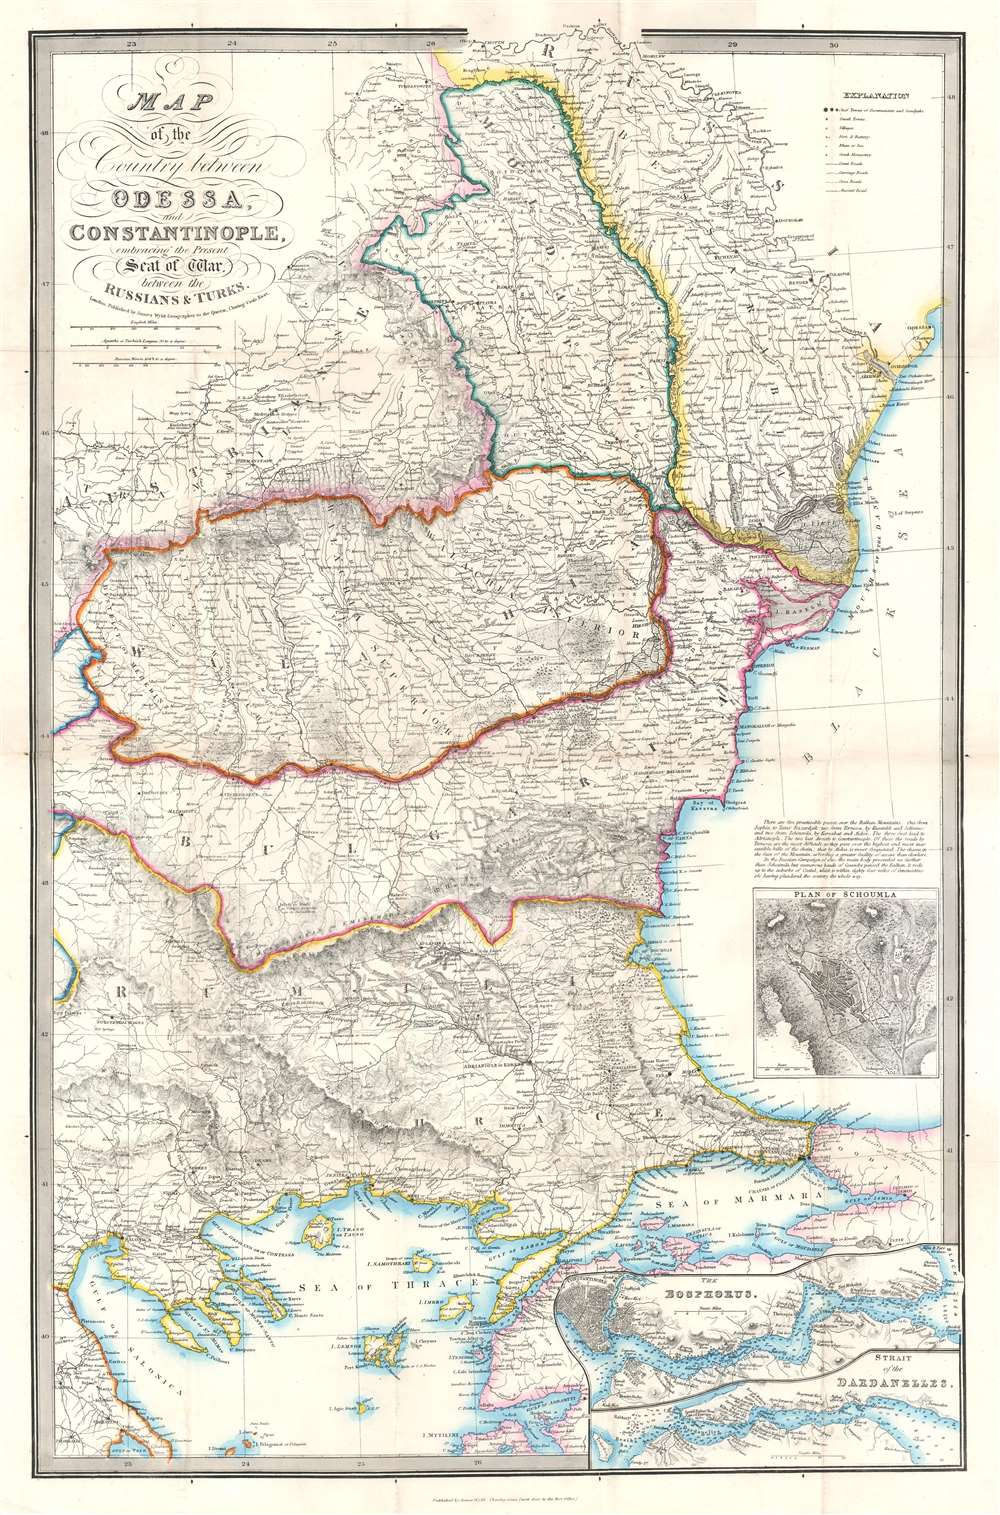 Image of: Map Of The Country Between Odessa And Constantinople Embracing The Present Seat Of War Between The Russians And Turks Geographicus Rare Antique Maps